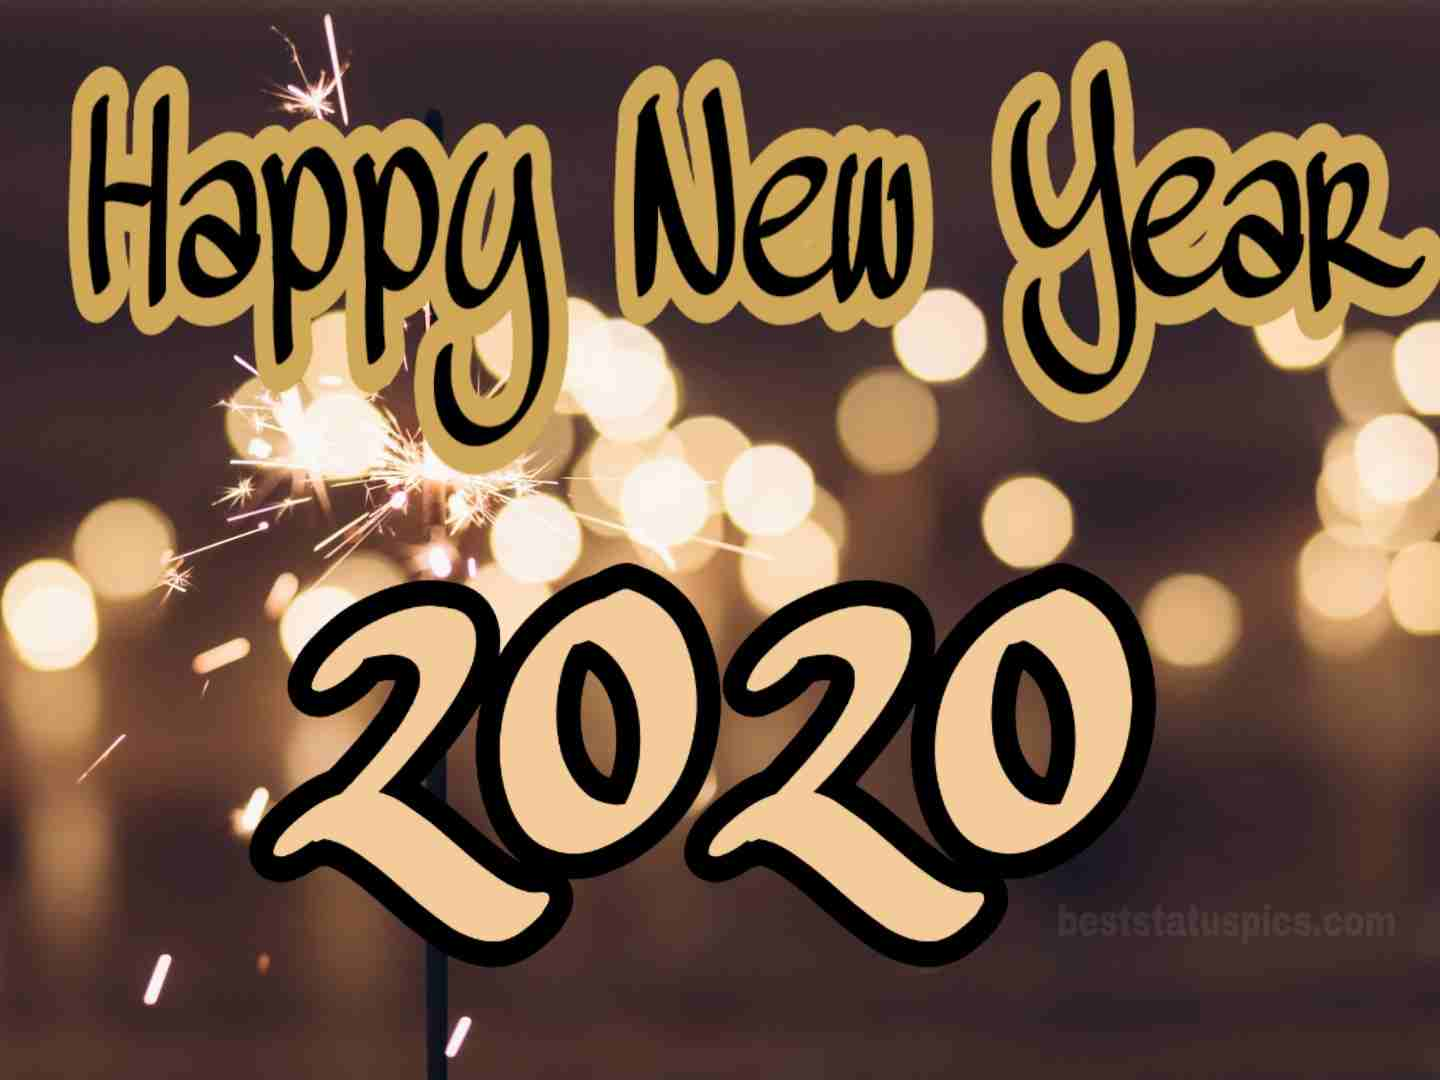 Happy New Year 2020 pic for boss